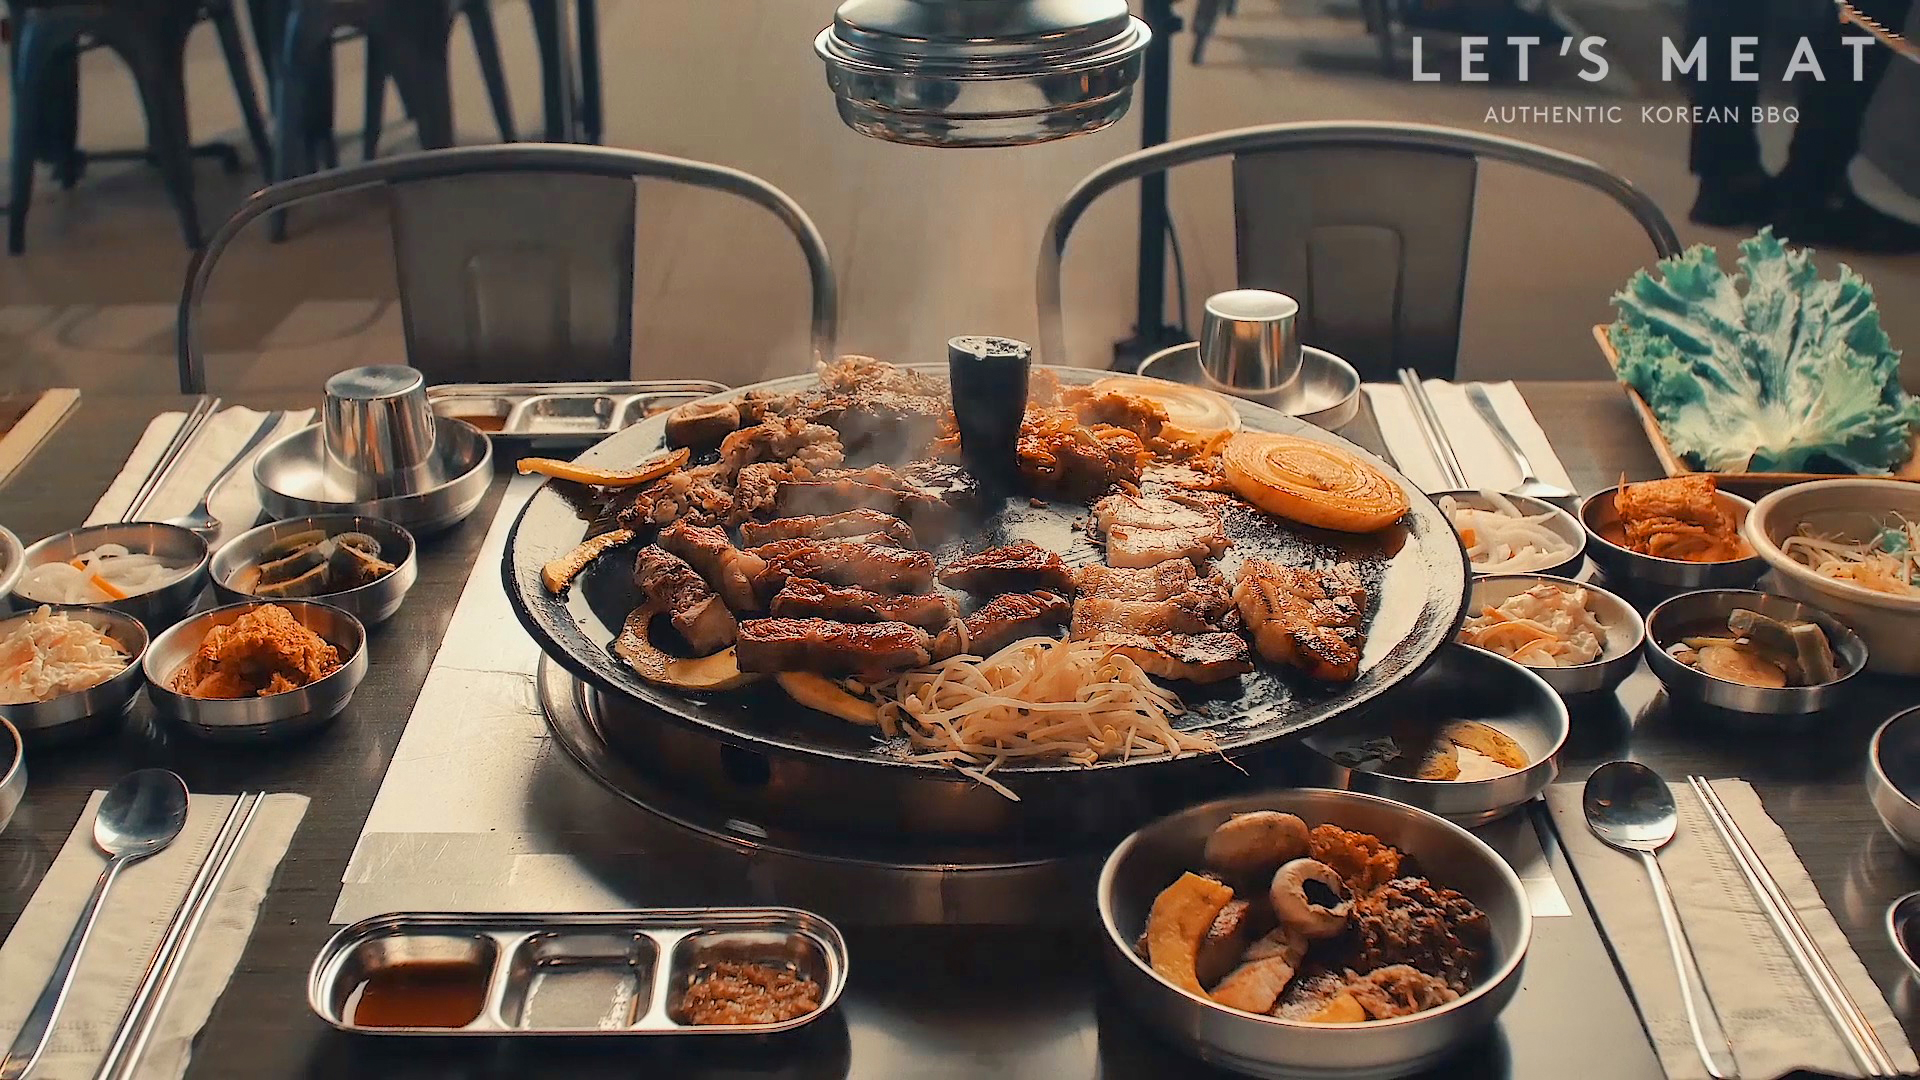 Manhattan Now Has a $40 All-You-Can-Eat Korean Barbecue Restaurant